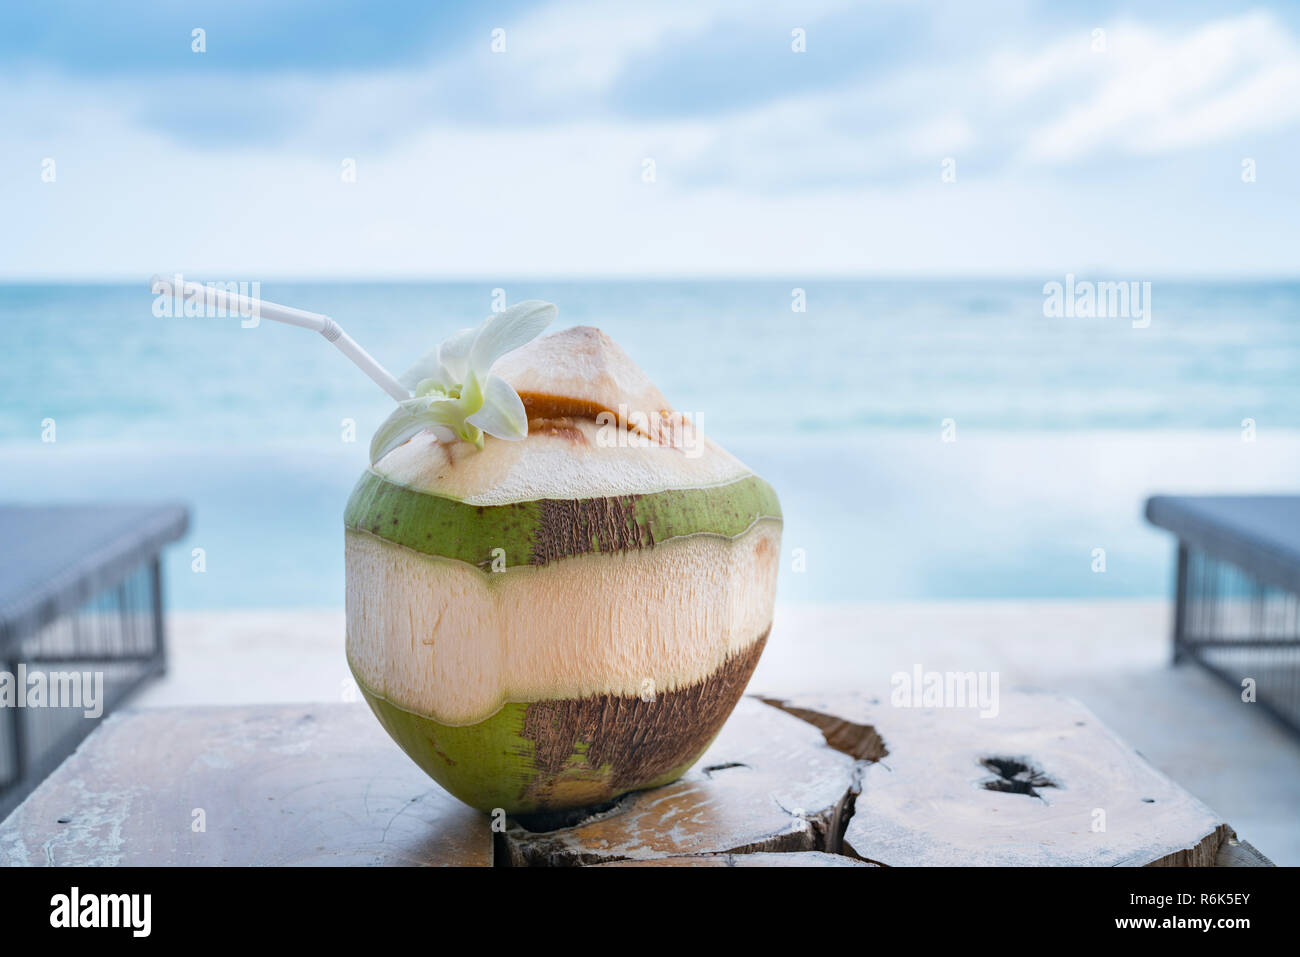 Tropical coconut drink in the shell, opened with straw and white frangipani flower. - Stock Image